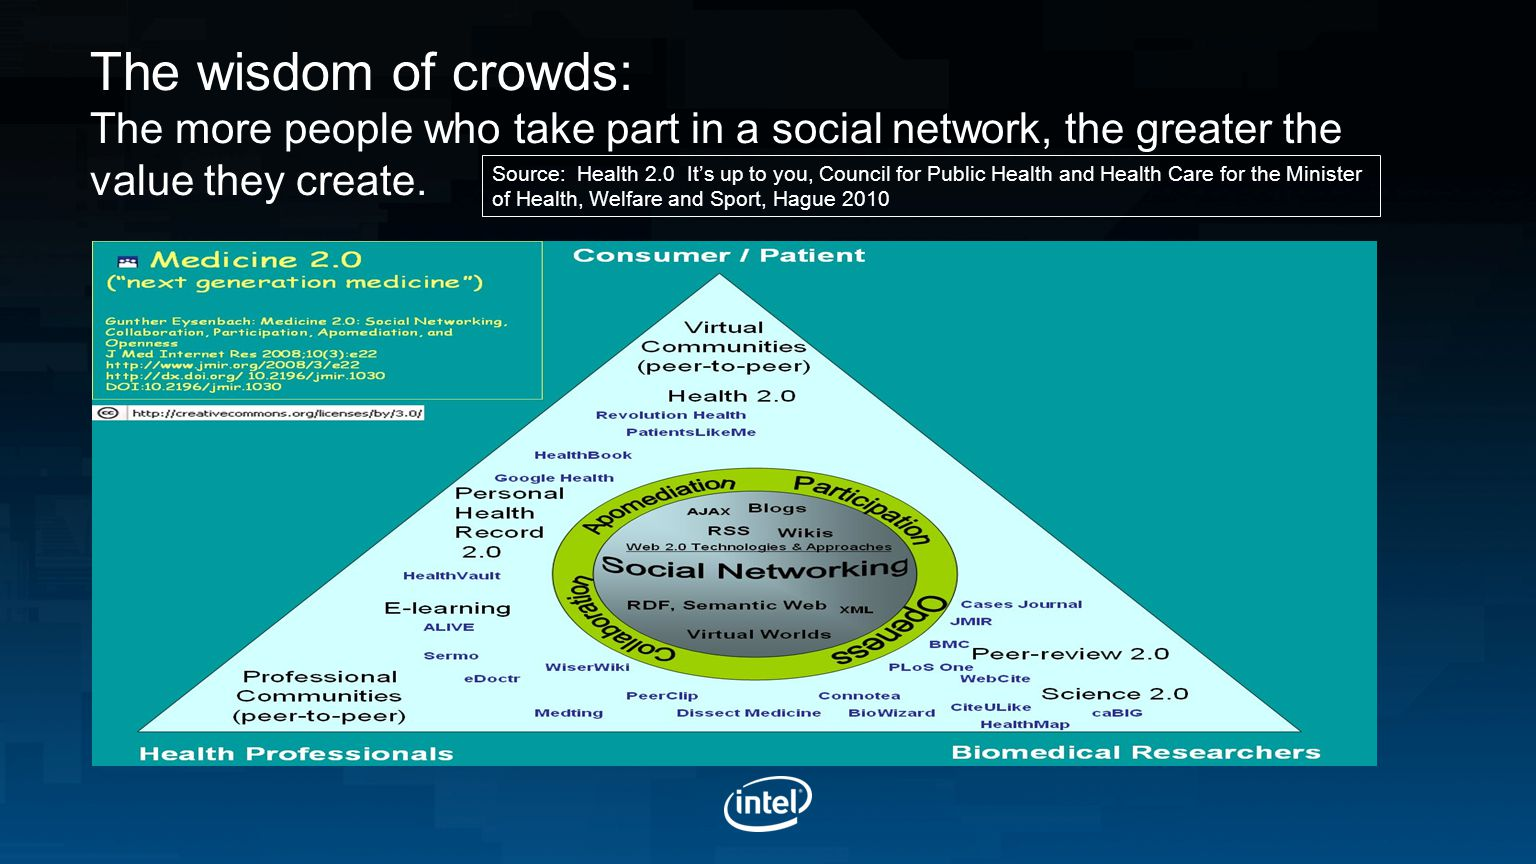 The wisdom of crowds: The more people who take part in a social network, the greater the value they create.